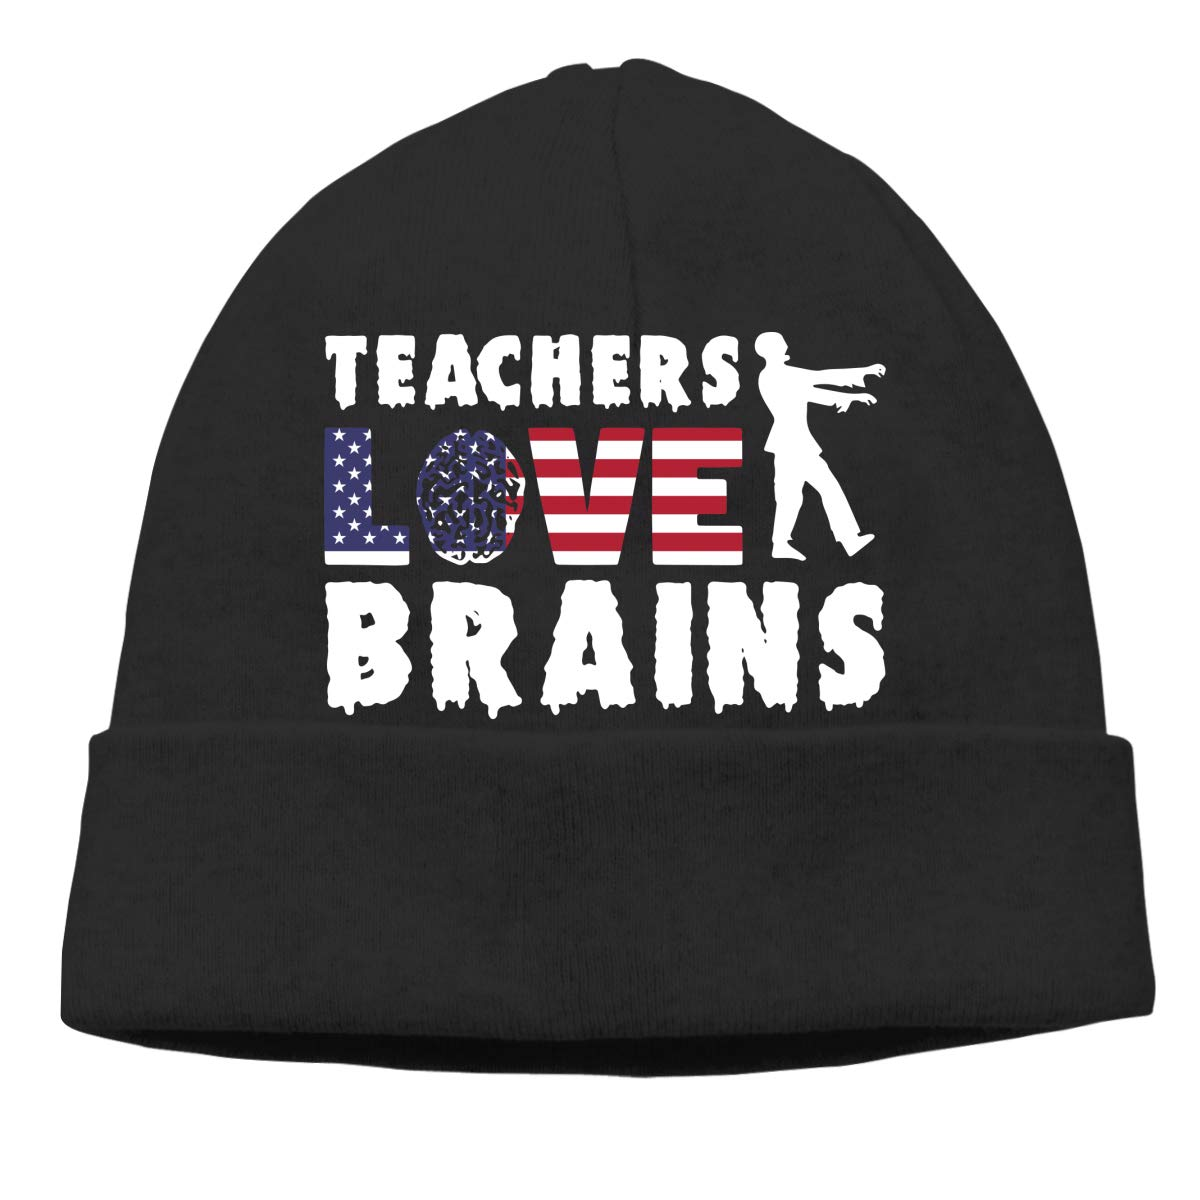 Teachers Love Brains American Flag Men//Women Great Thermal Cycling Skull Cap